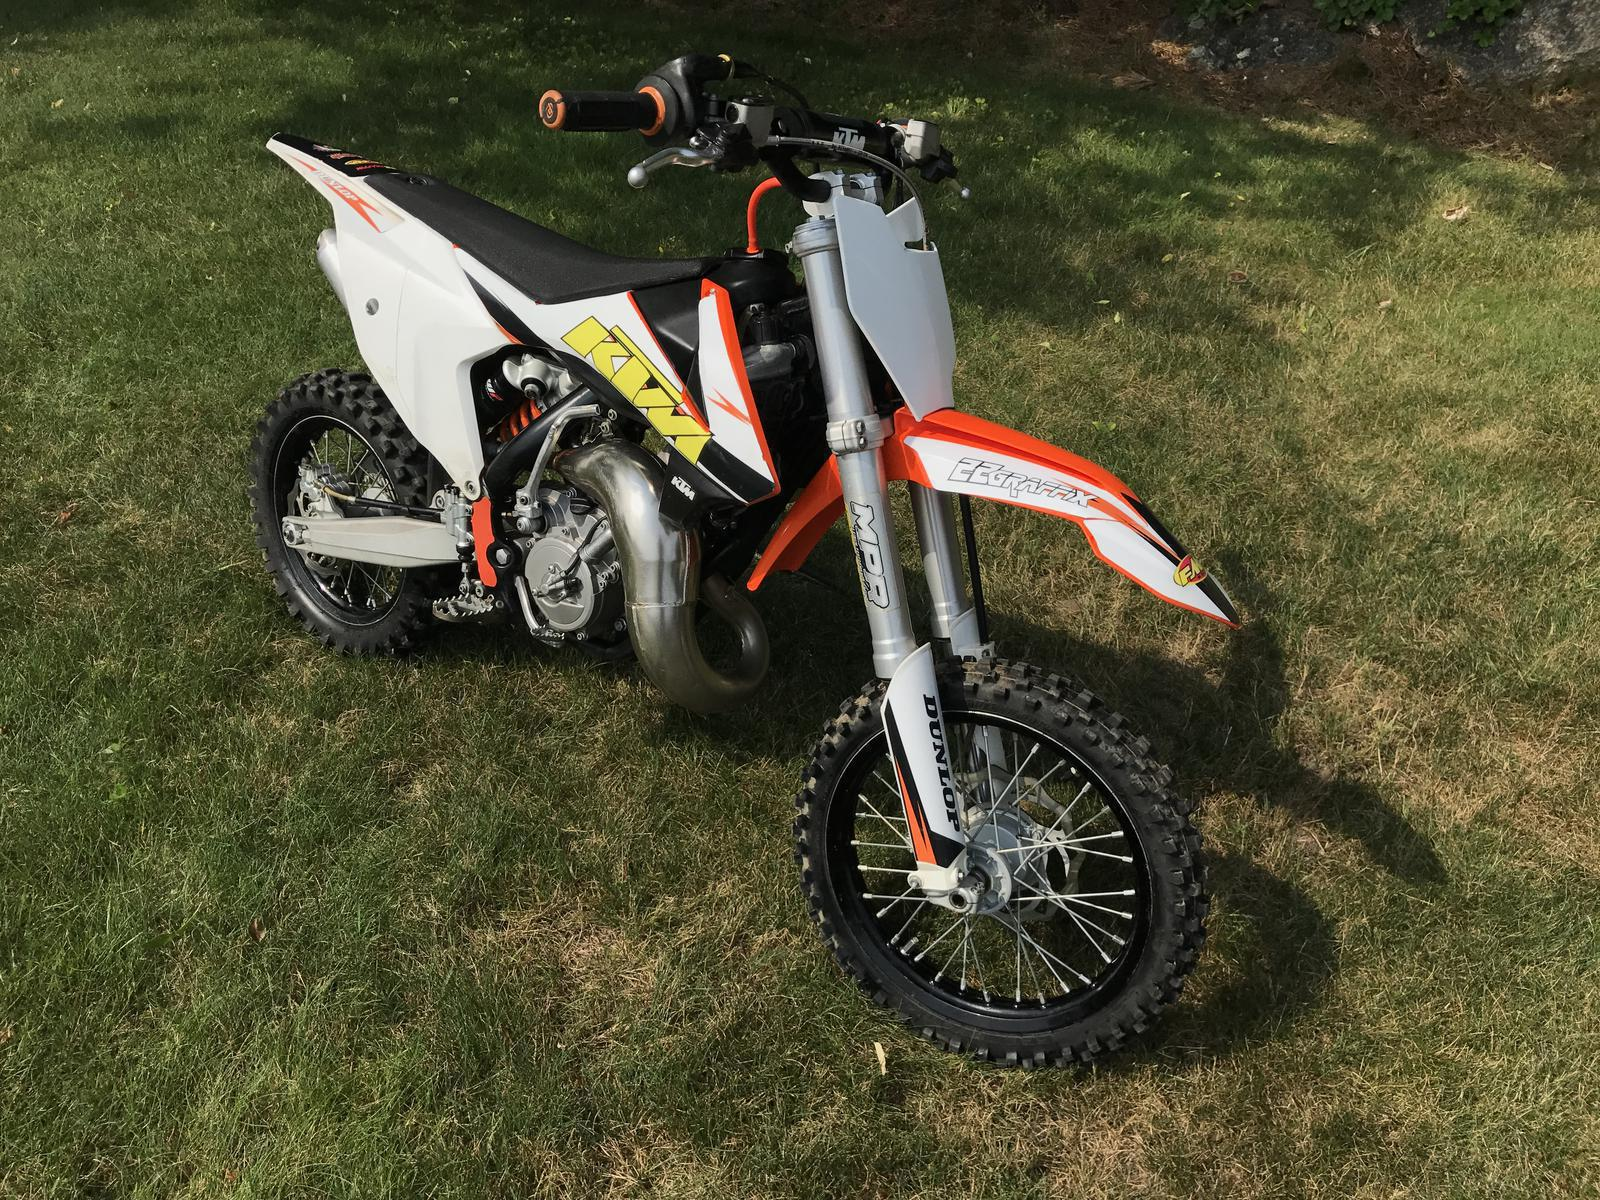 2016 ktm 65 sx for sale in plymouth, ma | pilgrim power sports